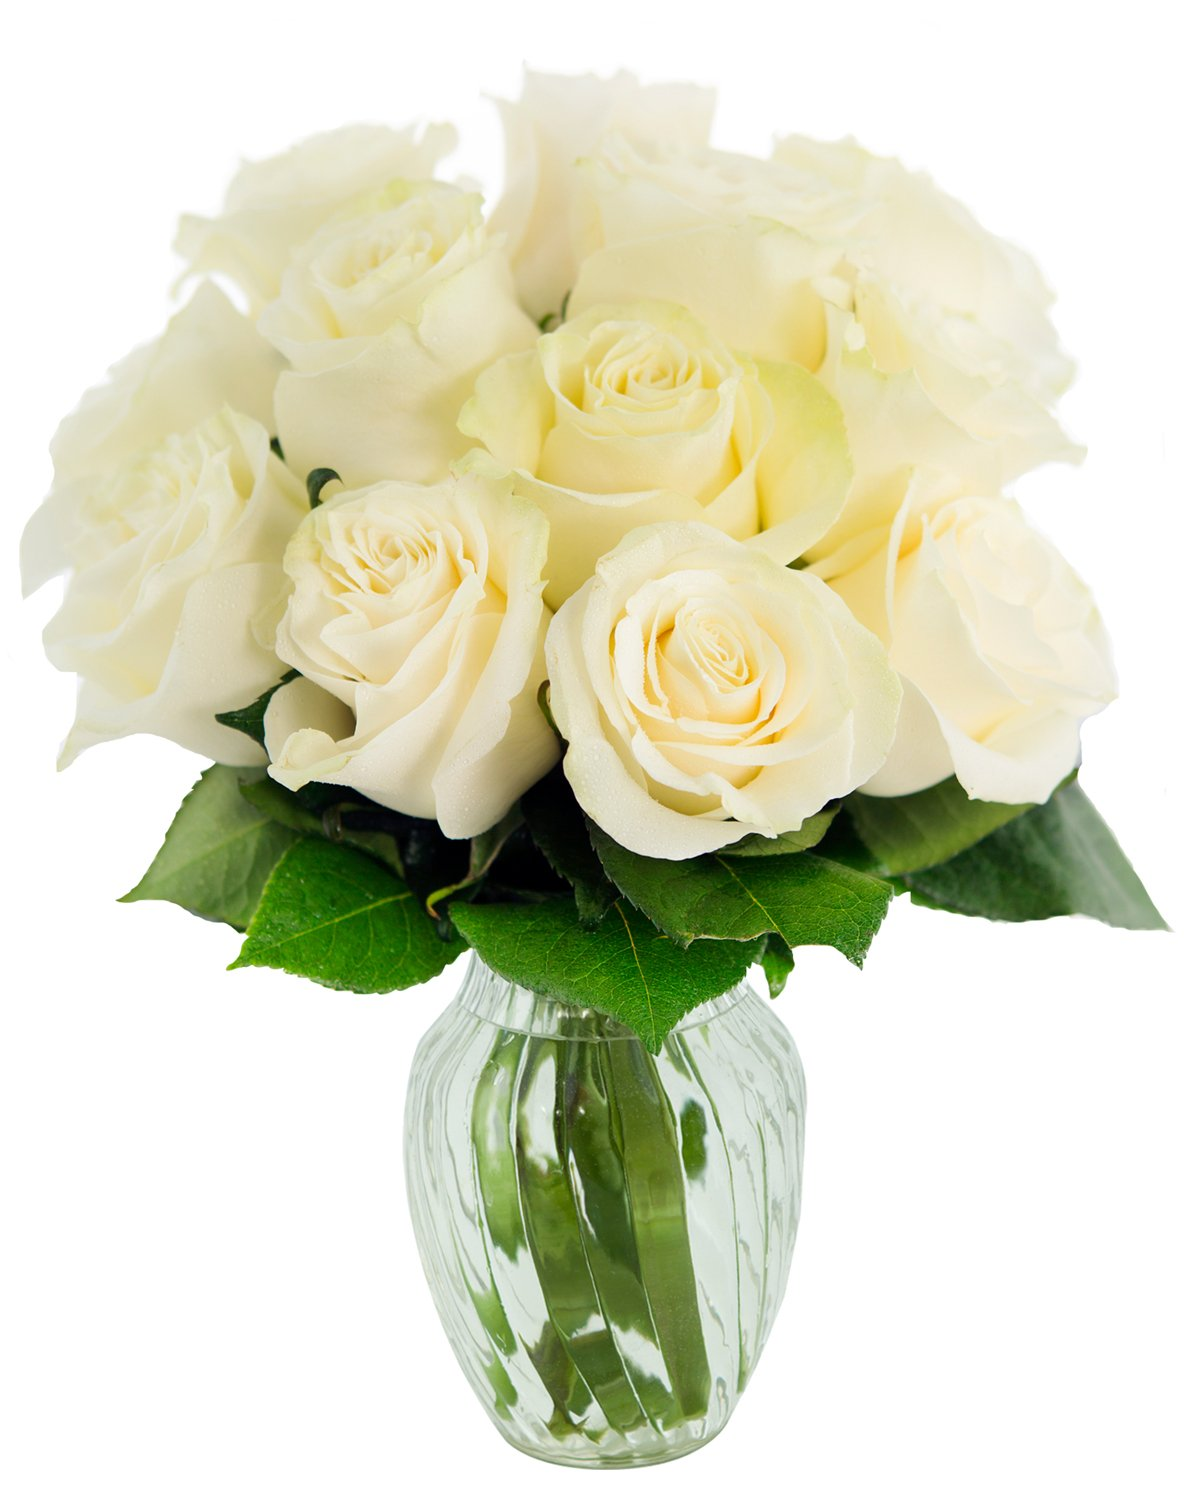 Amazon kabloom bouquet of 12 fresh cut white roses farm fresh amazon kabloom bouquet of 12 fresh cut white roses farm fresh long stem with vase grocery gourmet food izmirmasajfo